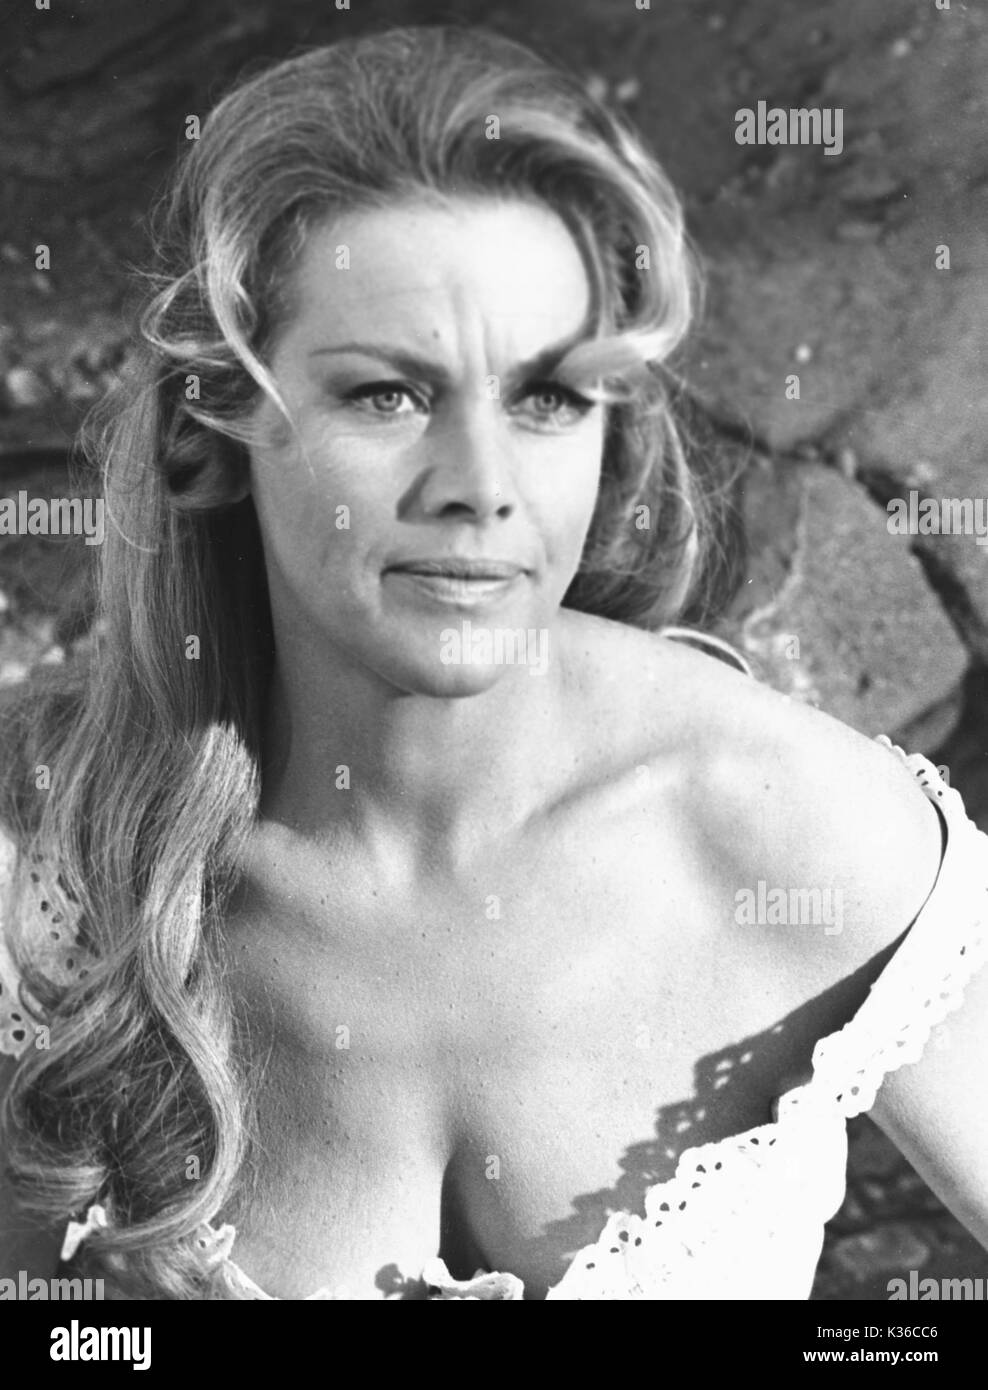 Honor Blackman nude (94 foto and video), Ass, Leaked, Selfie, legs 2019